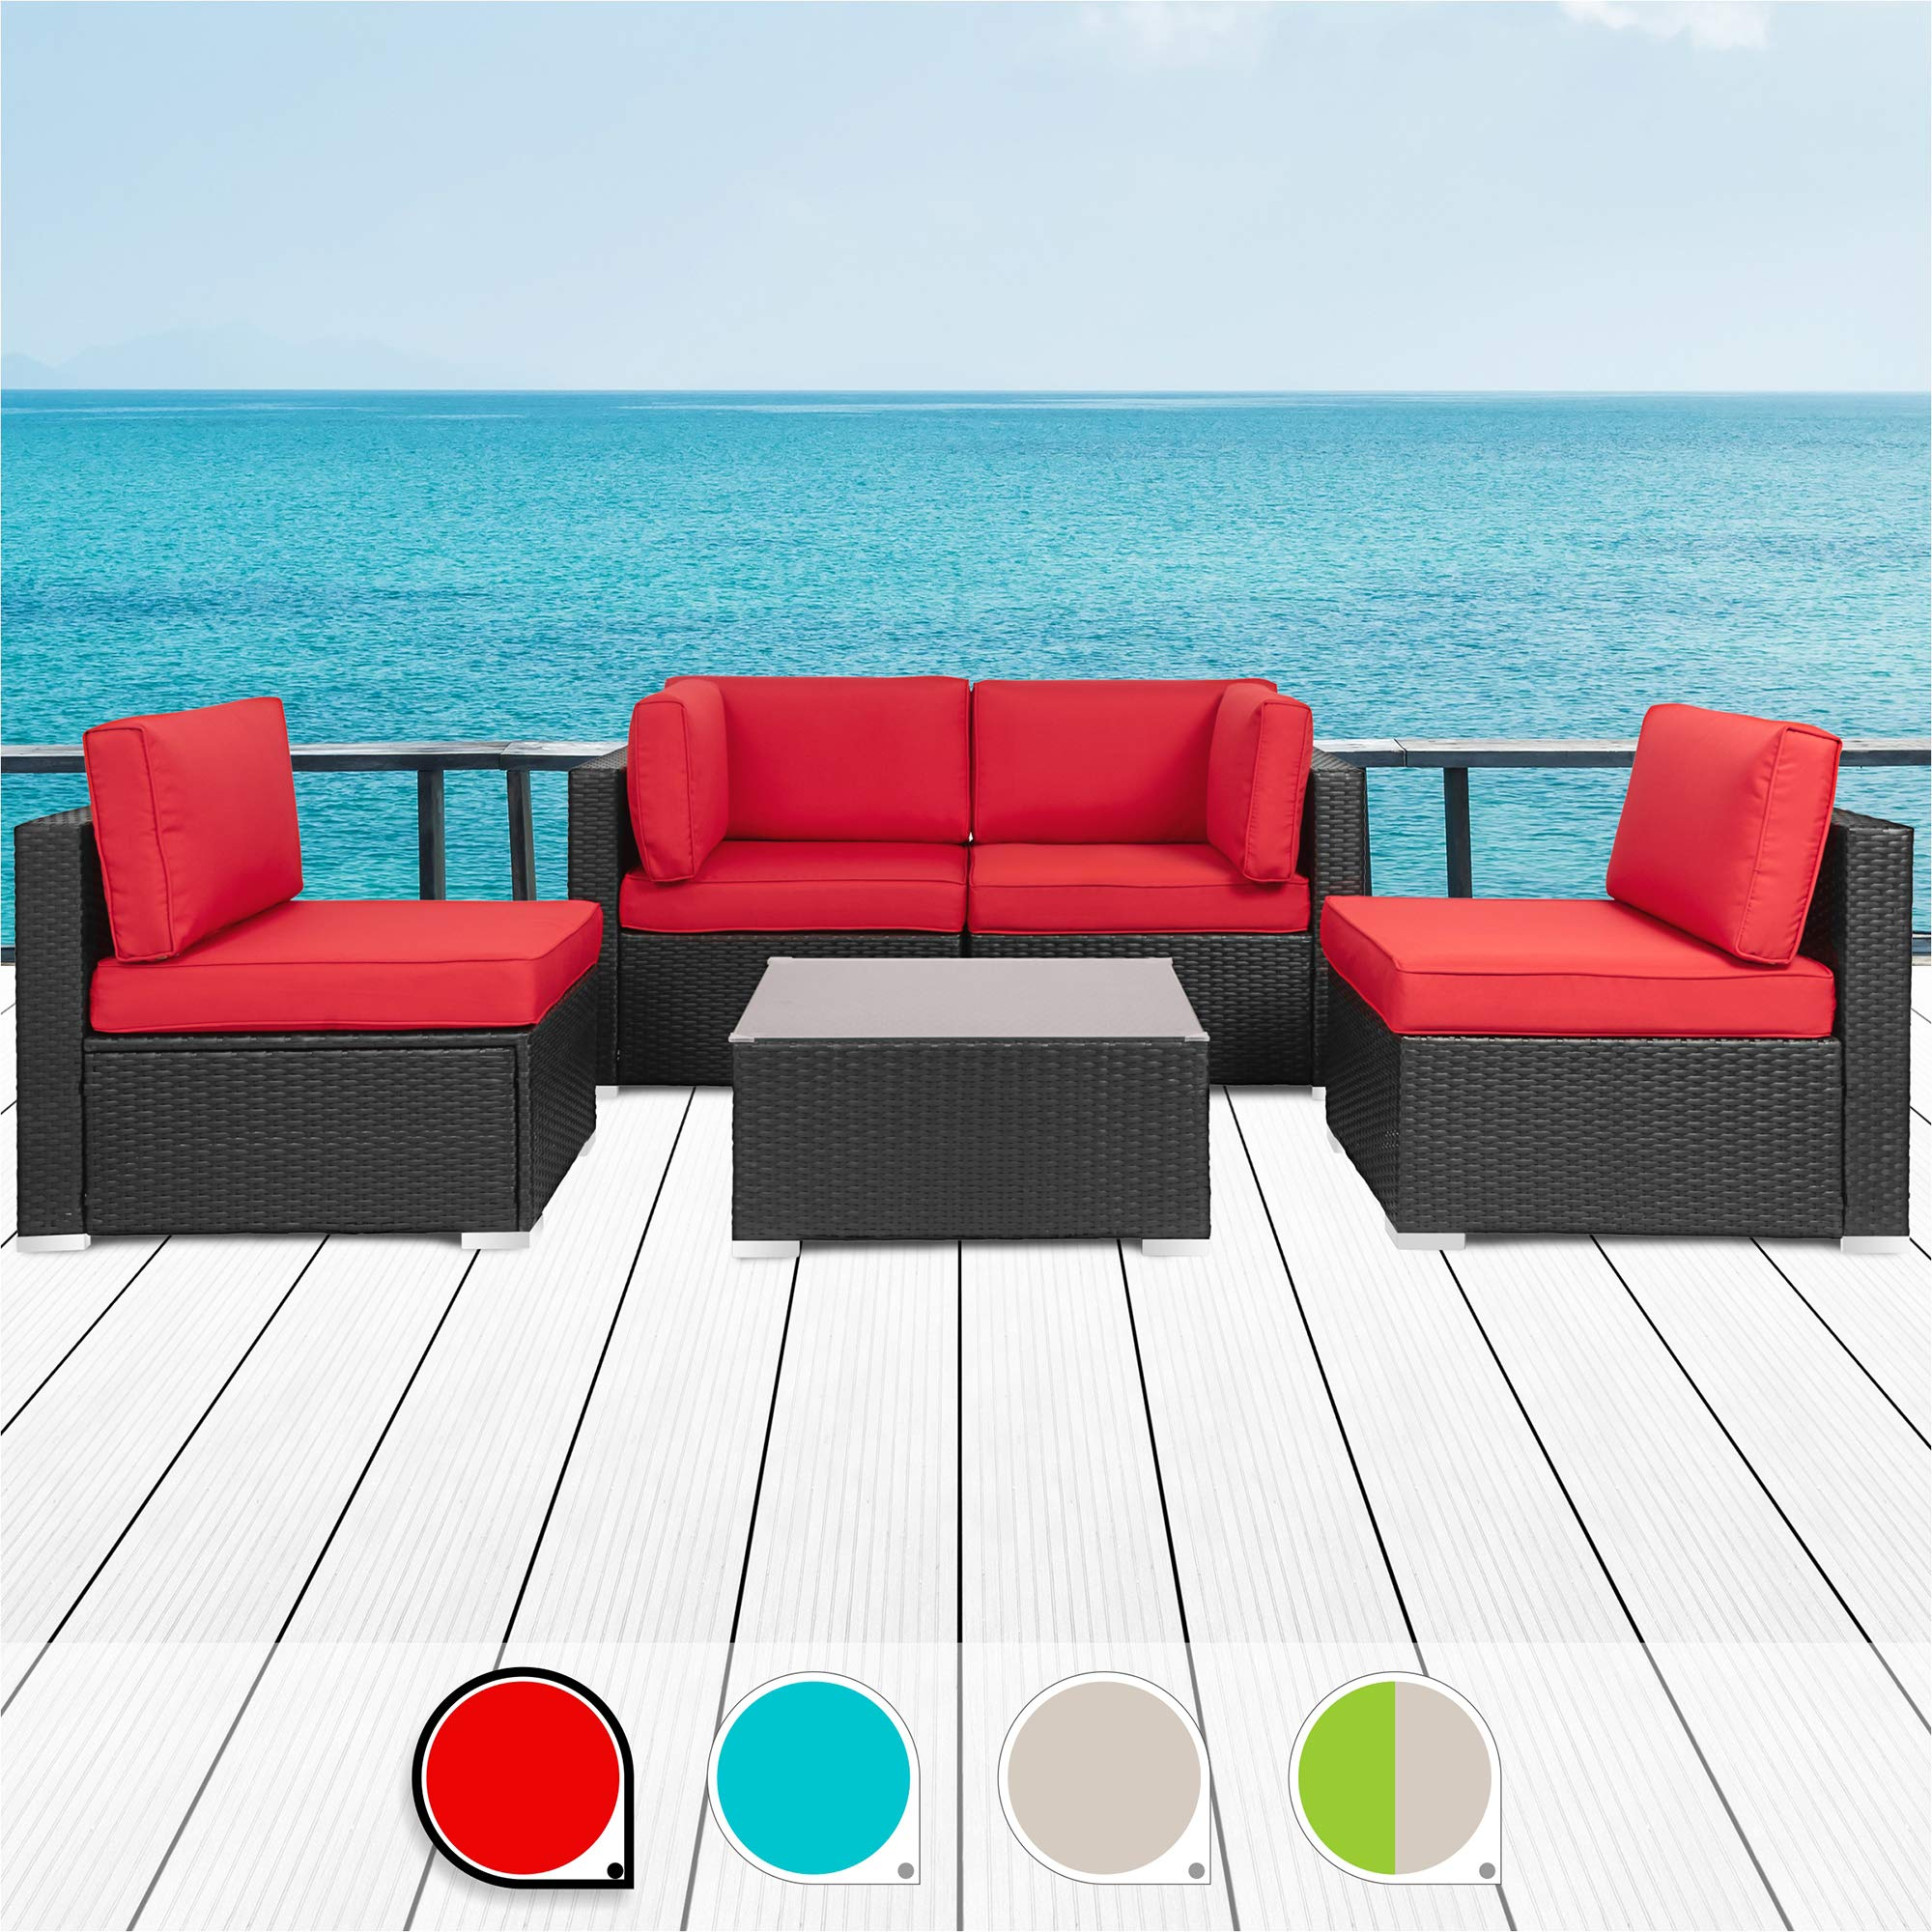 Walsunny 5pcs Patio Outdoor Furniture Sets,Low Back All-Weather Rattan Sectional Sofa with Tea Table&Washable Couch Cushions (Black Rattan) (Red) by Walsunny